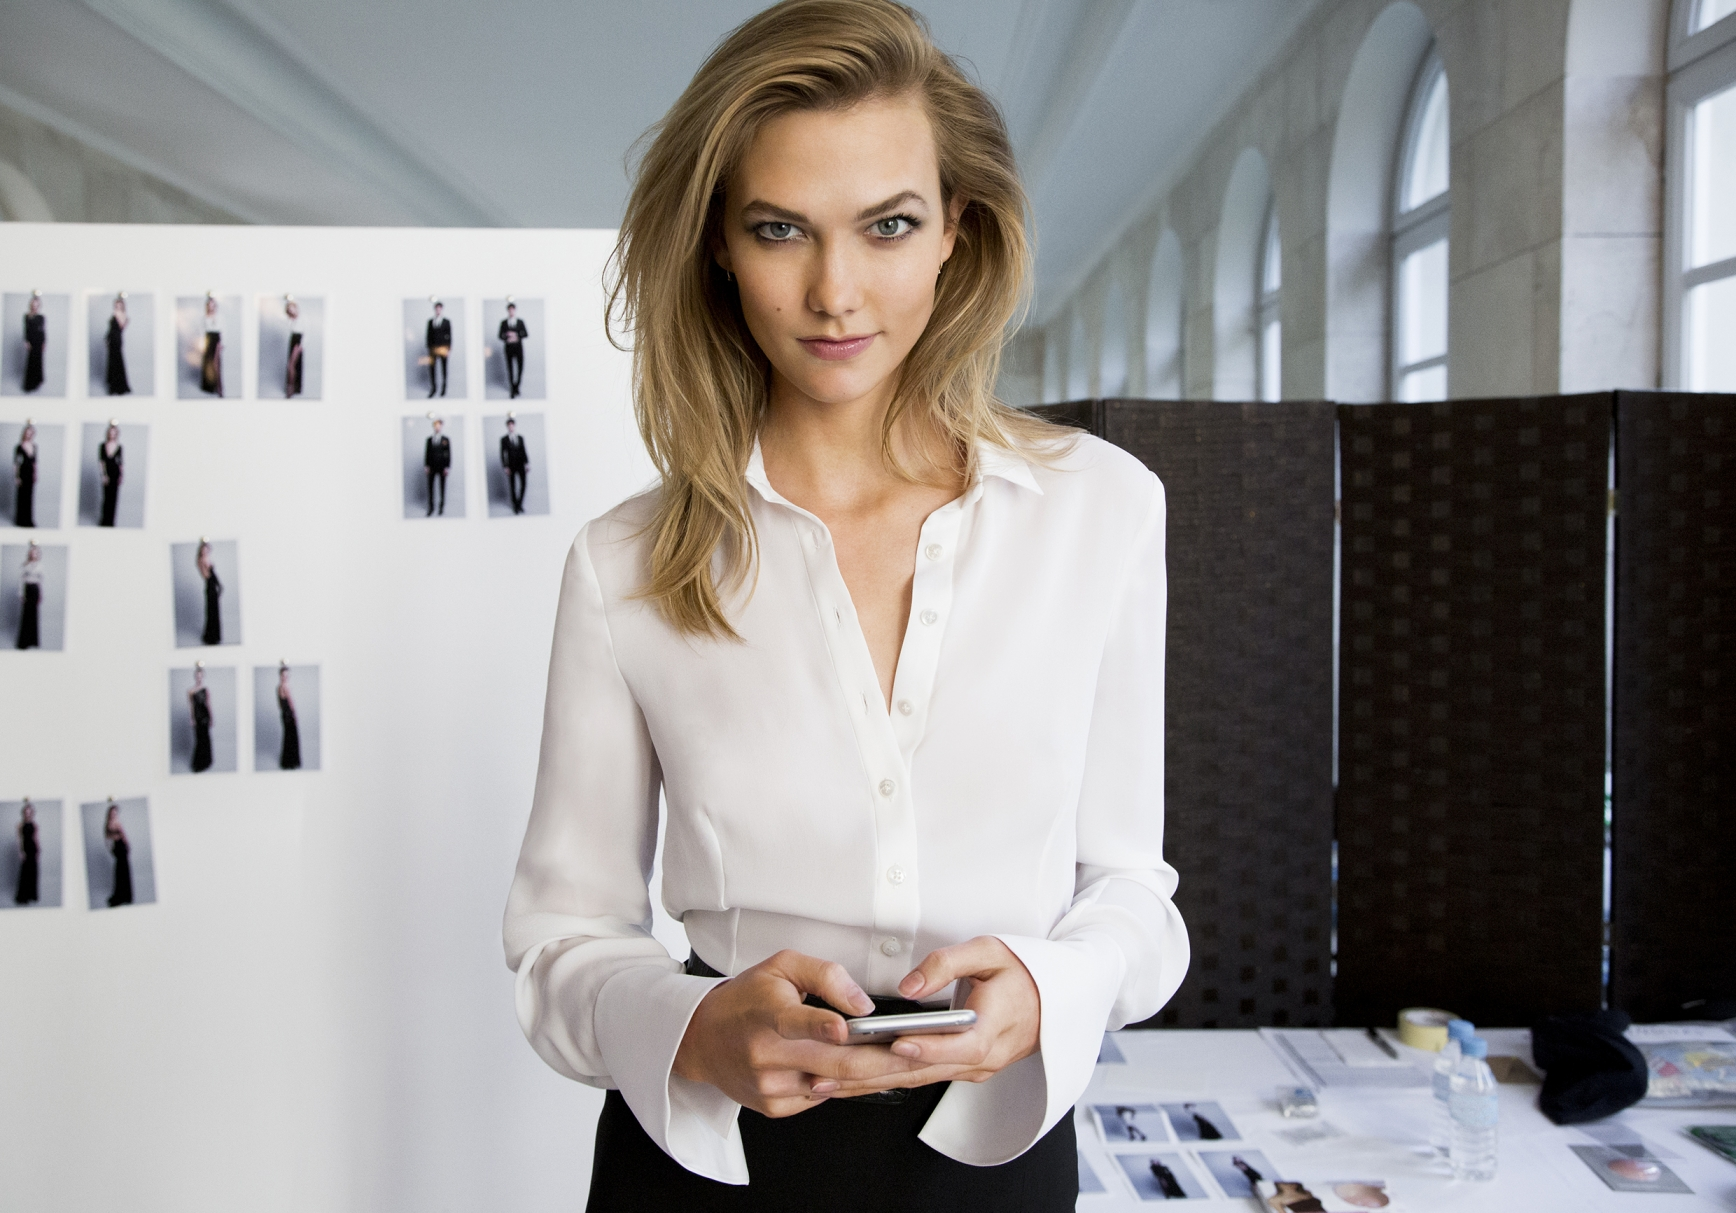 Carolina-Herrera-Good-Girl-Fragrance-Karlie-Kloss